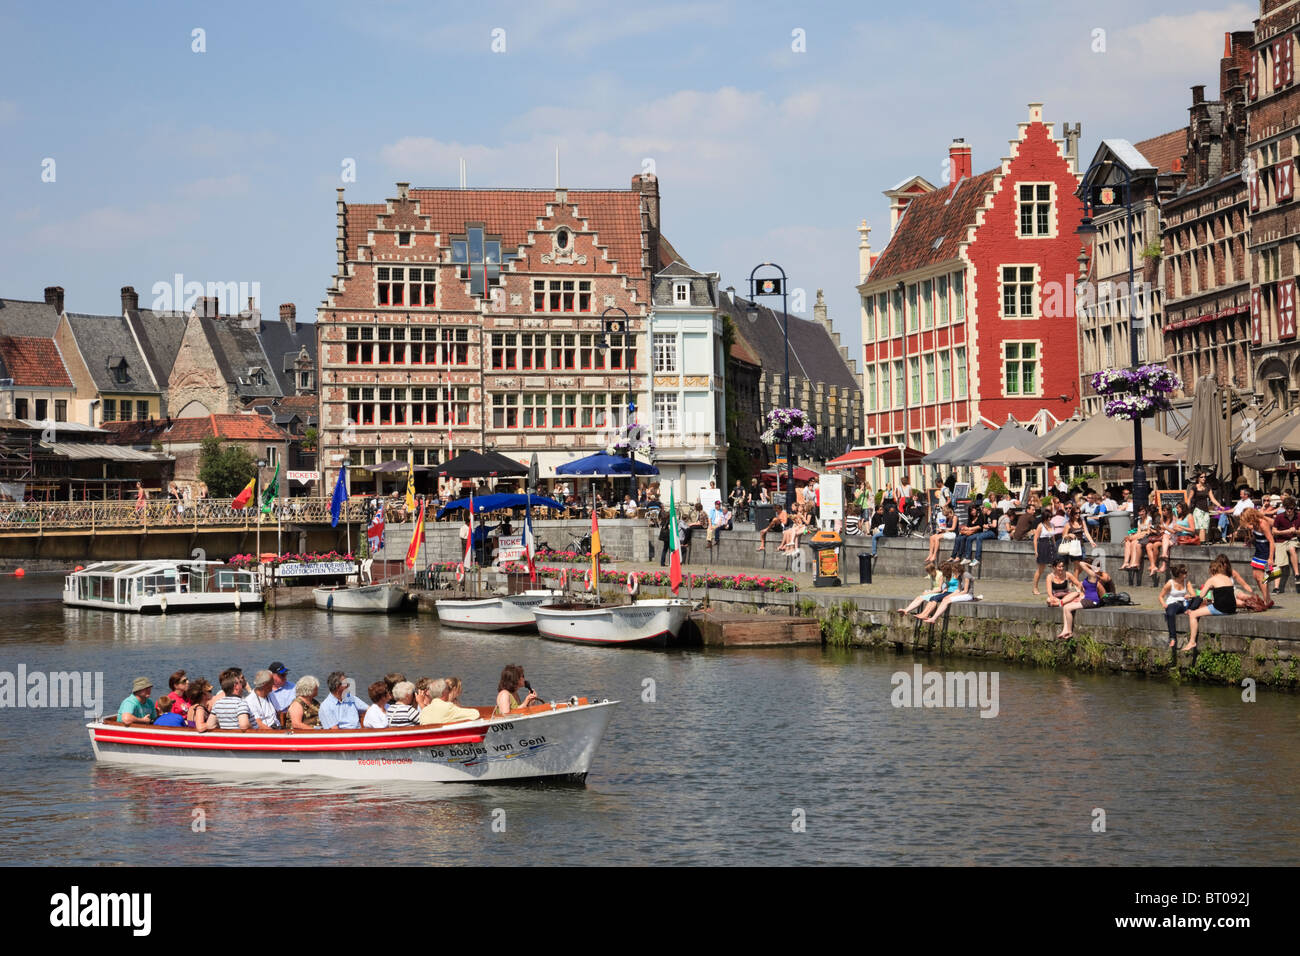 Graslei Site, Ghent, East Flanders, Belgium, Tourists in sightseeing boats on River Leie with medieval Flemish Guild - Stock Image